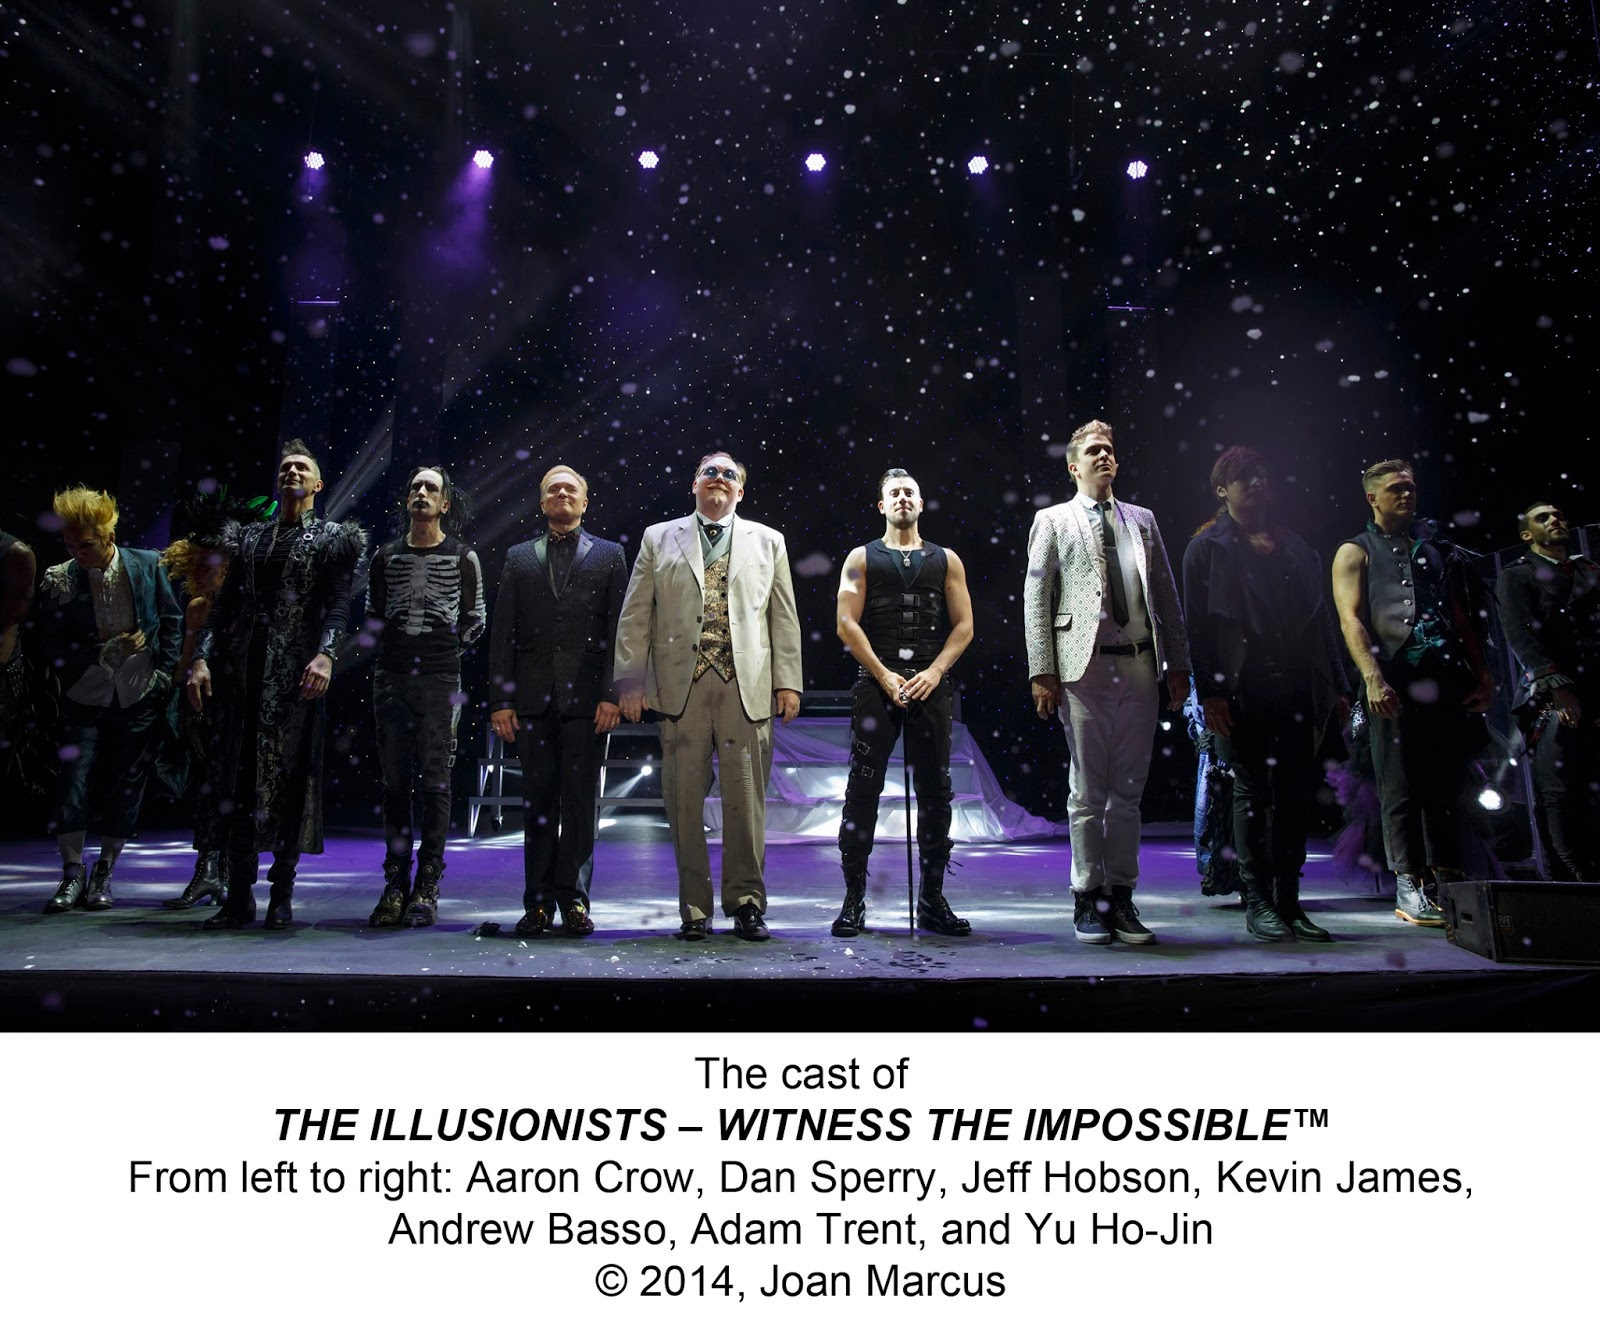 The Illusionists Live Tour